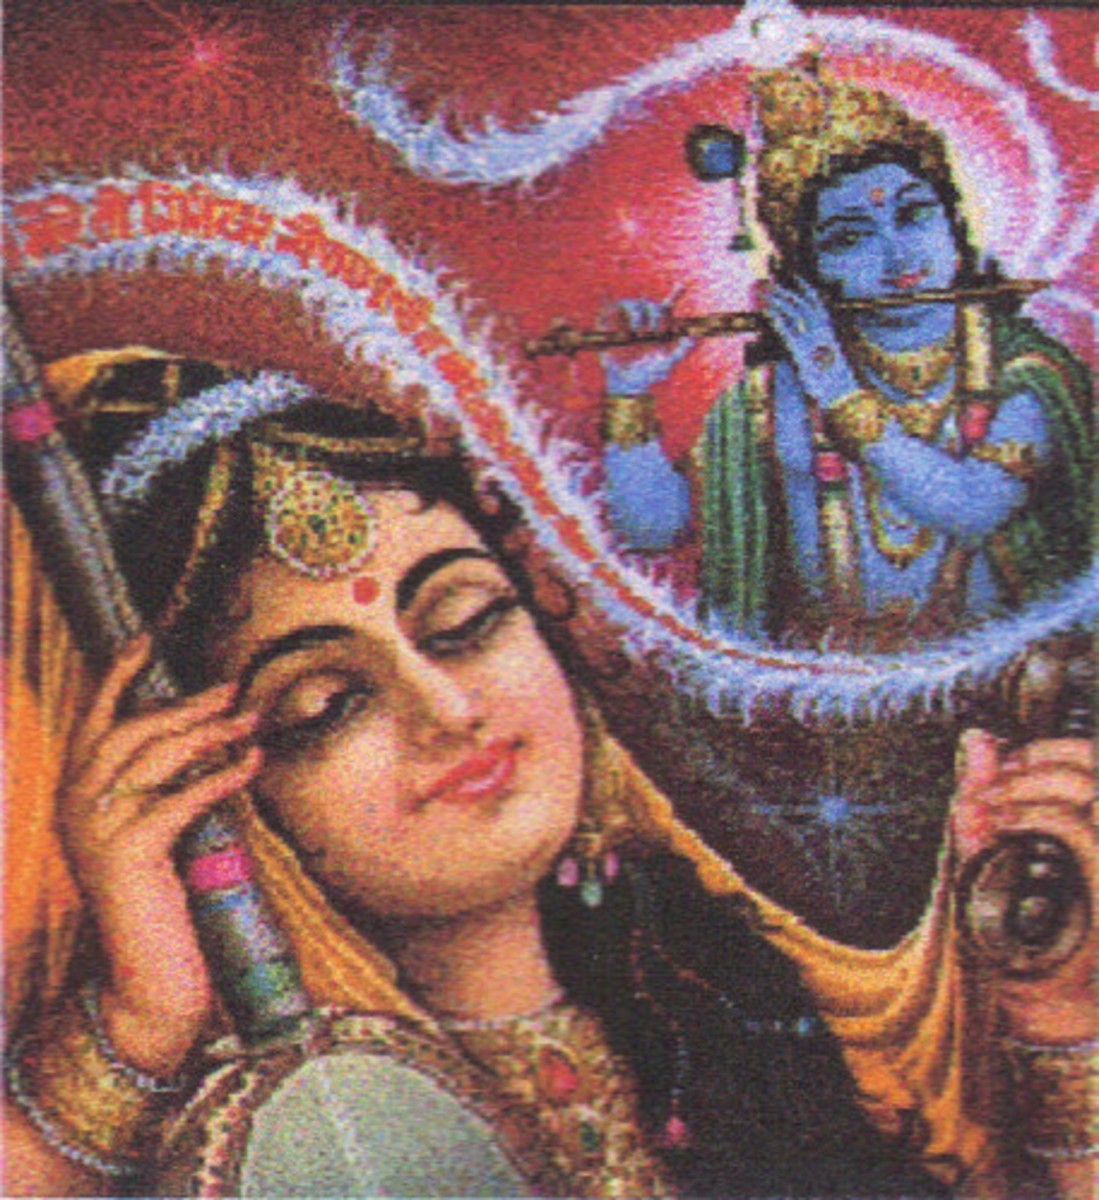 Mirabai was a devotee of the high, higher, highest order. Among the saints of India, she is absolutely unparalleled. She composed many, many bhajans, which are prayerful songs to God.- Sri Chinmoy.